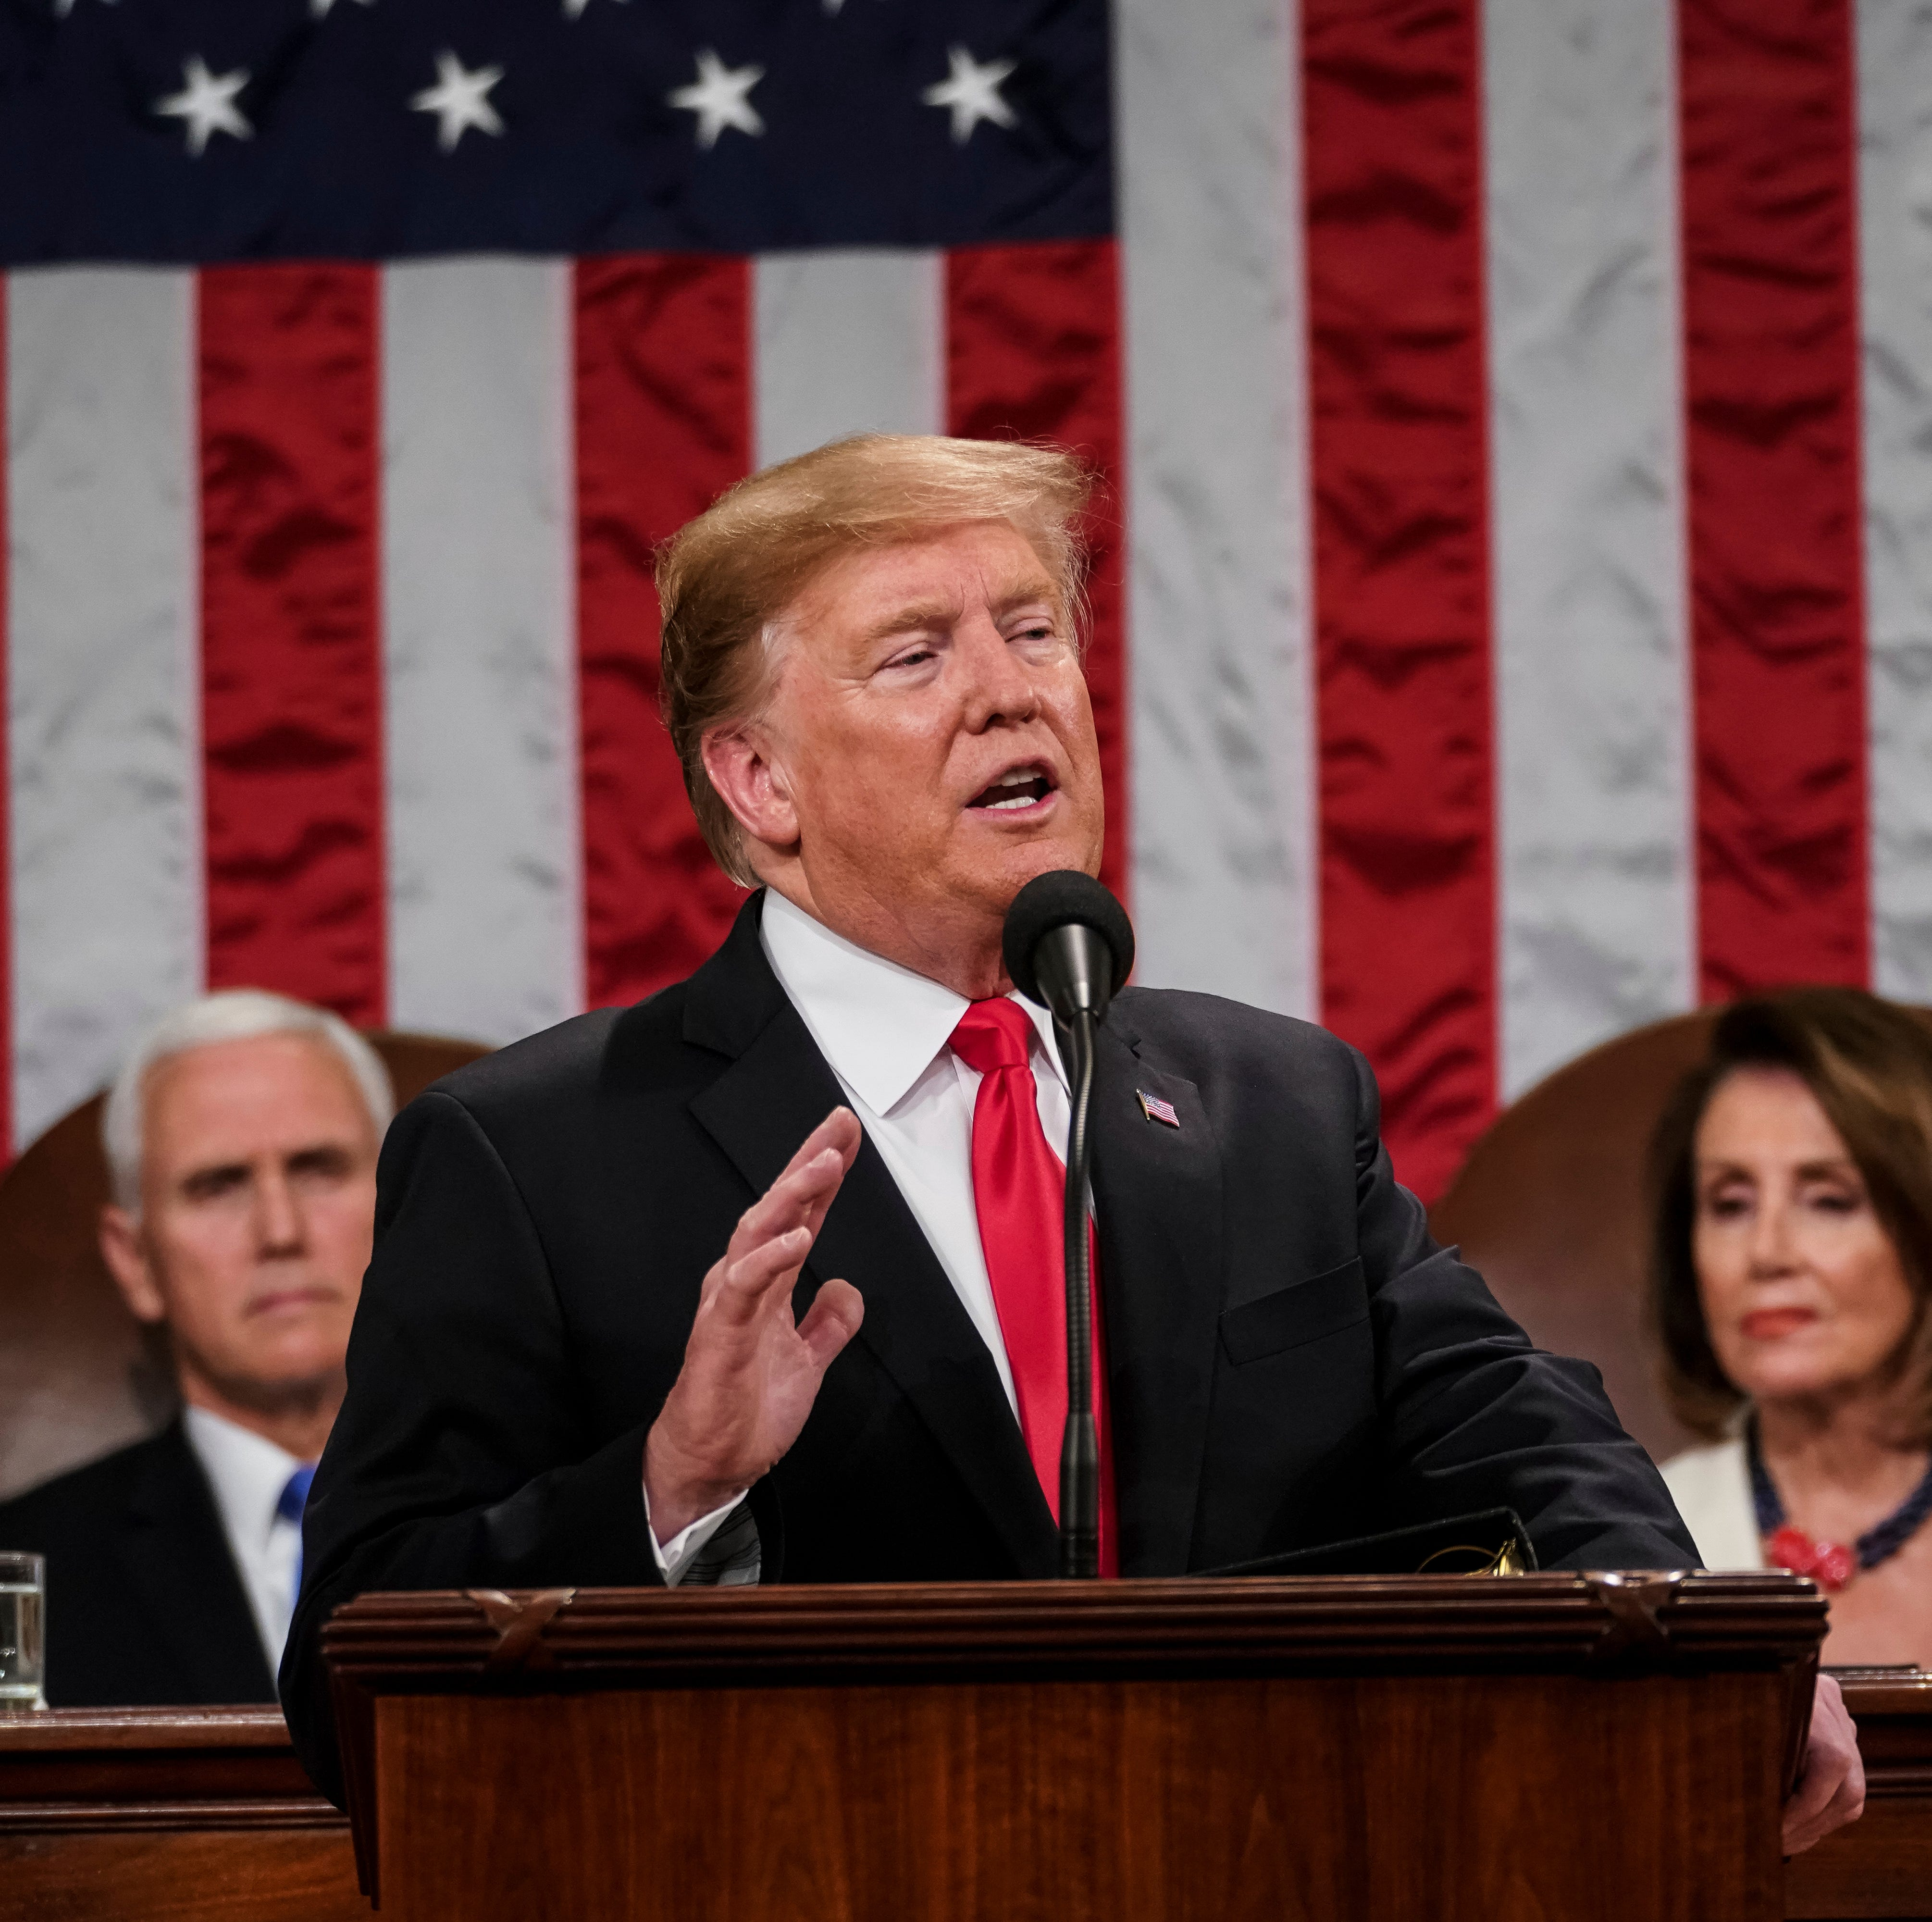 With another government shutdown looming, Trump doubles down on border wall in State of the Union